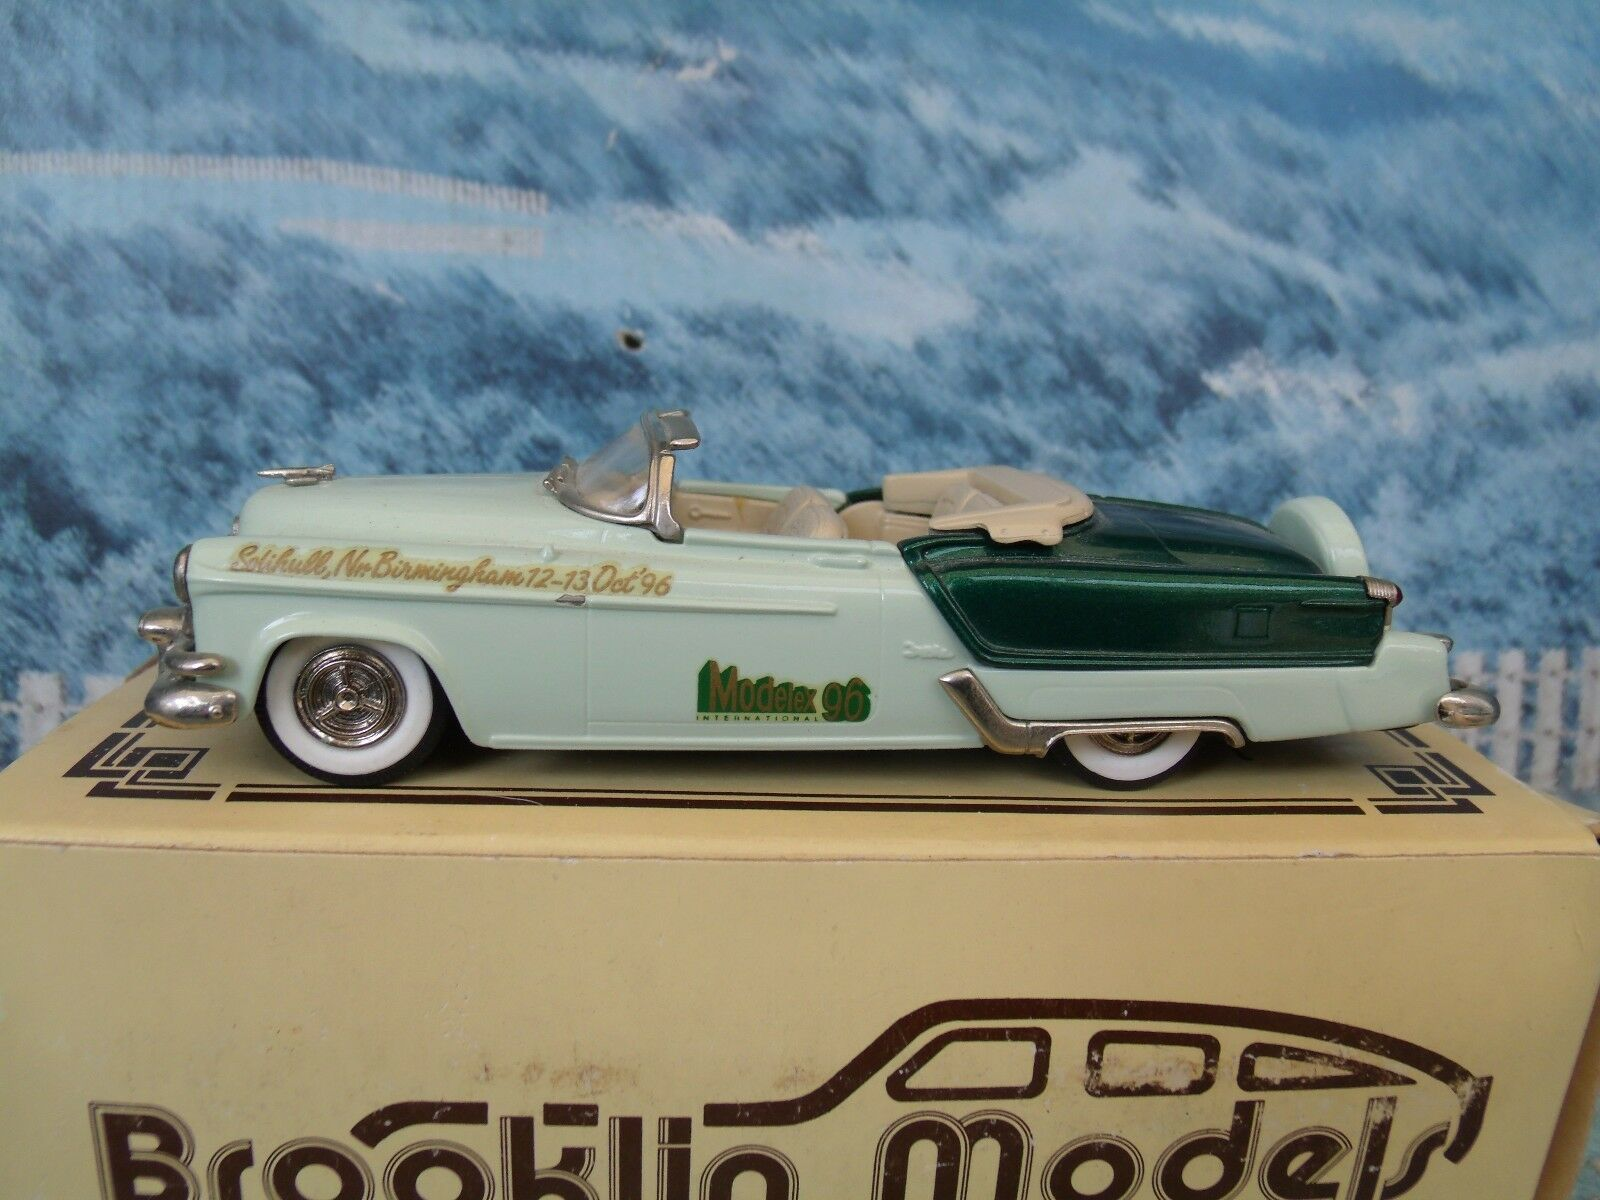 1 43 Brooklin models  1953 Oldsmobile Fiesta Modelex 1996 BRK39x  white metal